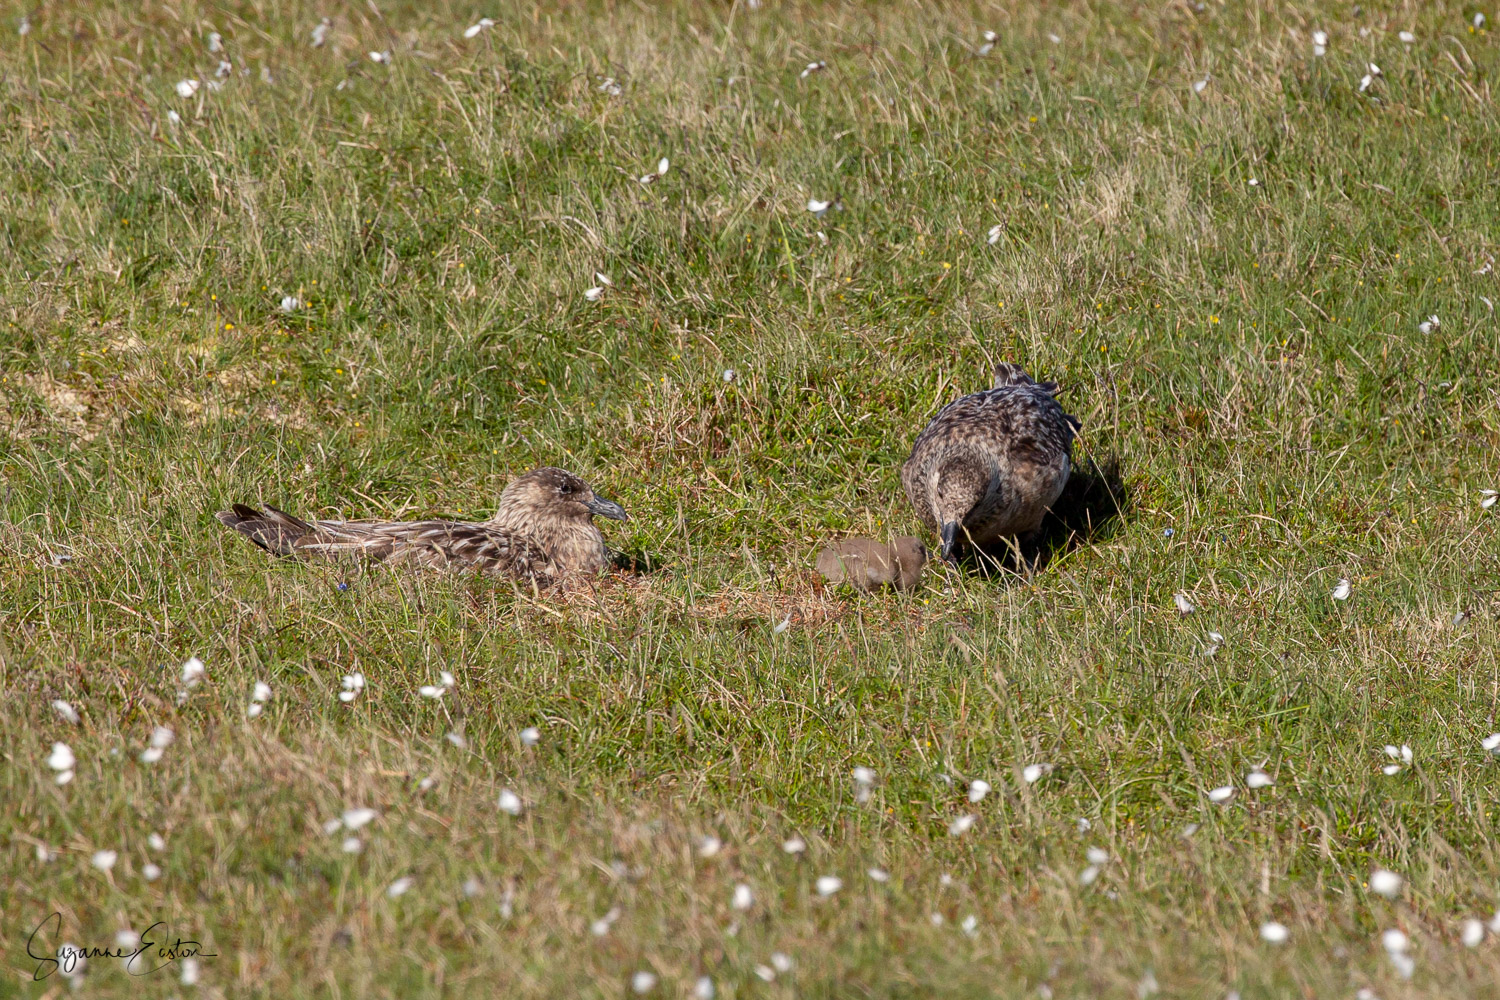 Bonxie family in Shetland with a young chick